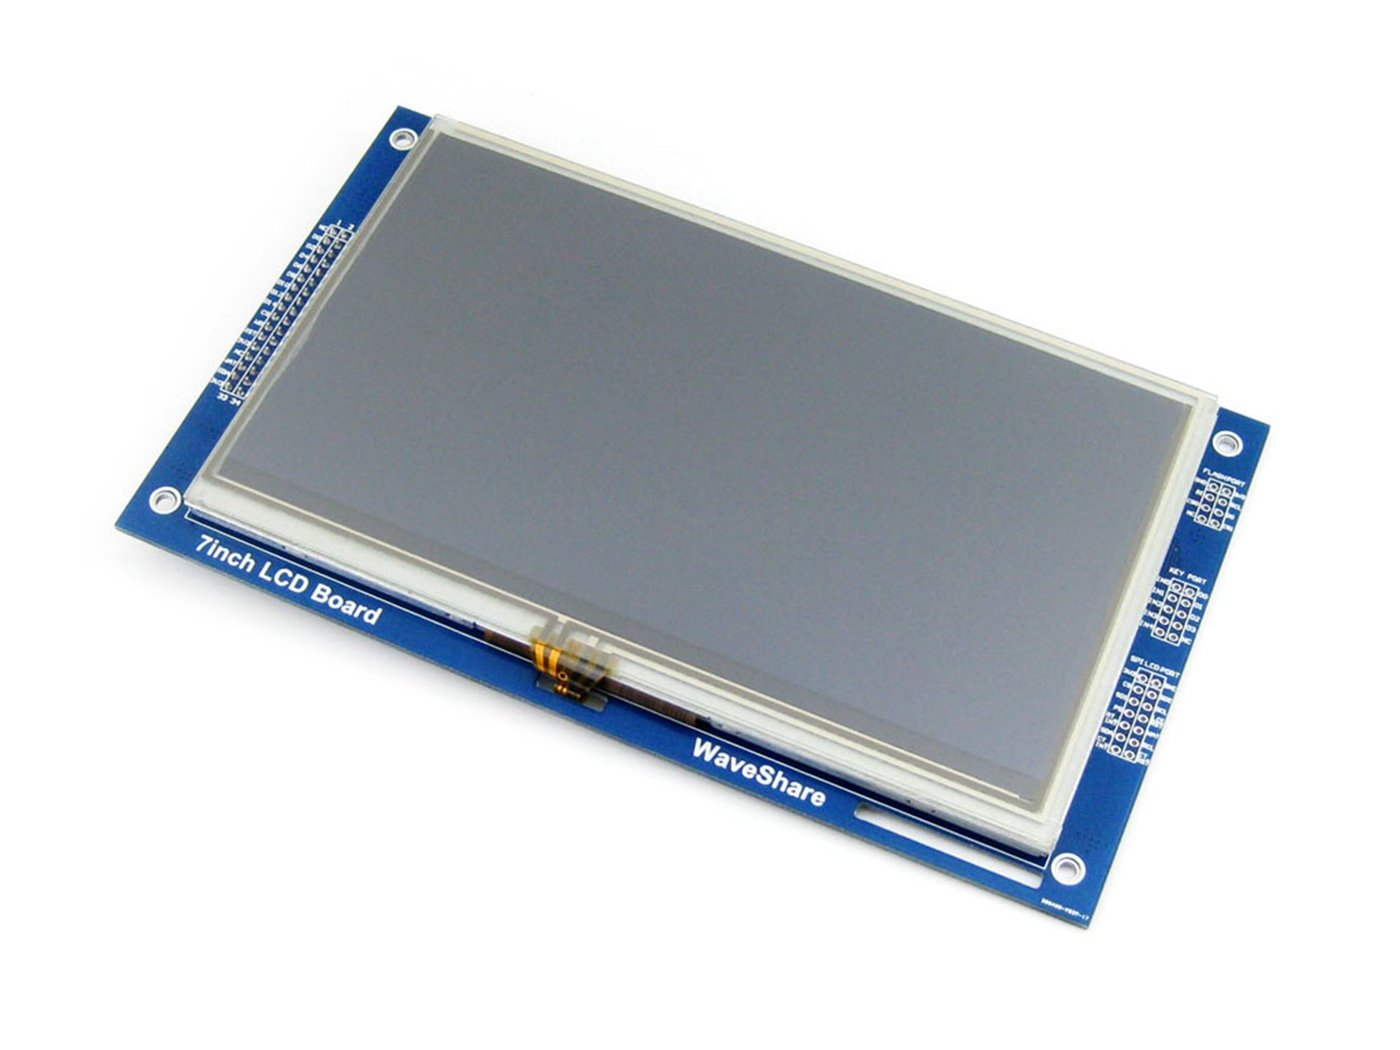 @WENDi TFT 7inch Resistive Multicolor Graphic LCD, LED Backlight, 800 X 480 Pixel, RA8875 Chip For SCM LCD